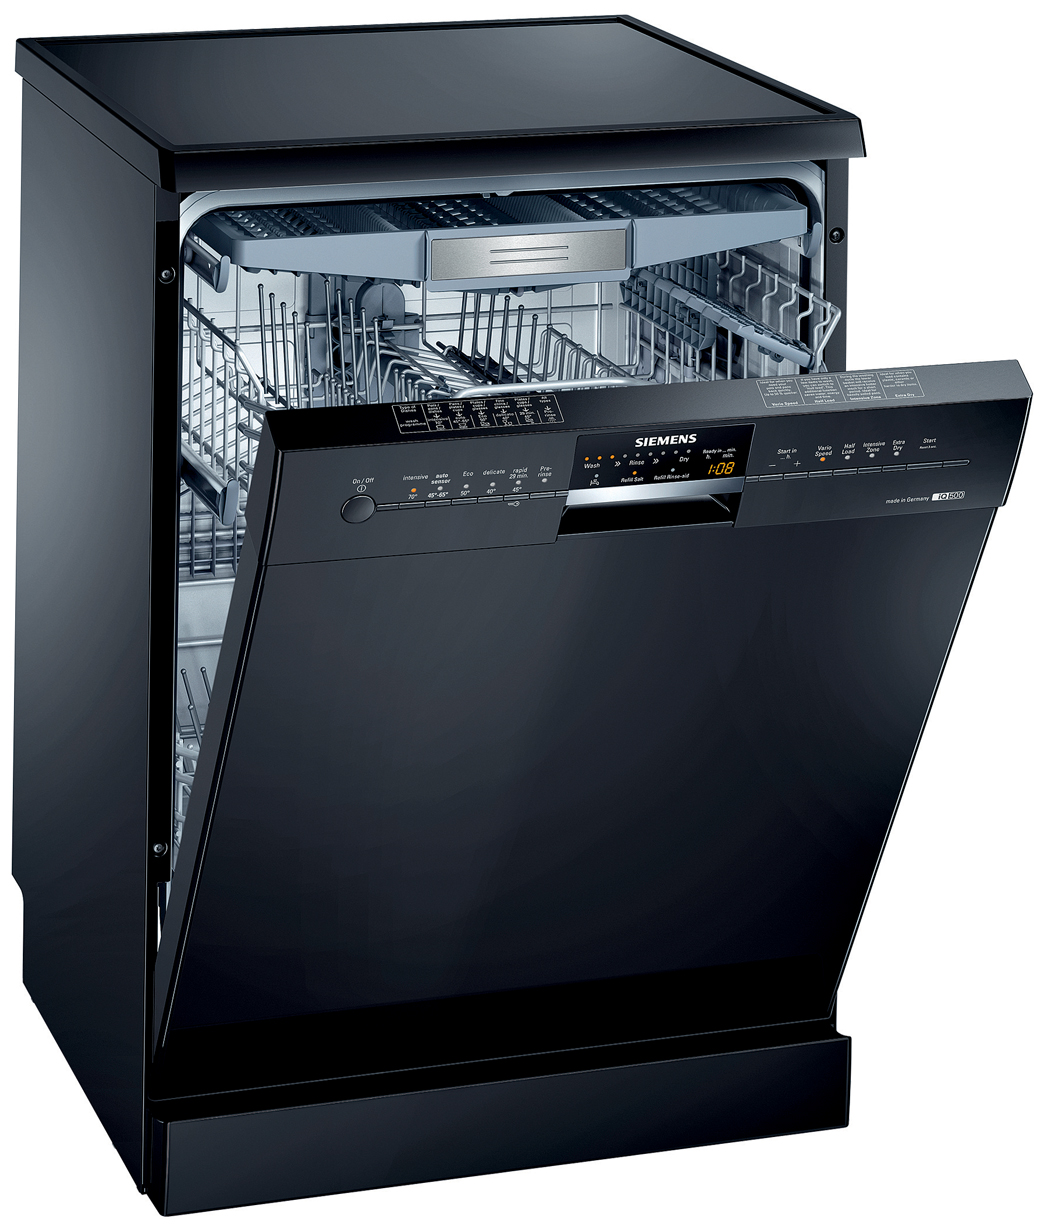 Lg Dryer Repair >> Dishwasher Repair - National Appliance Service & Repair